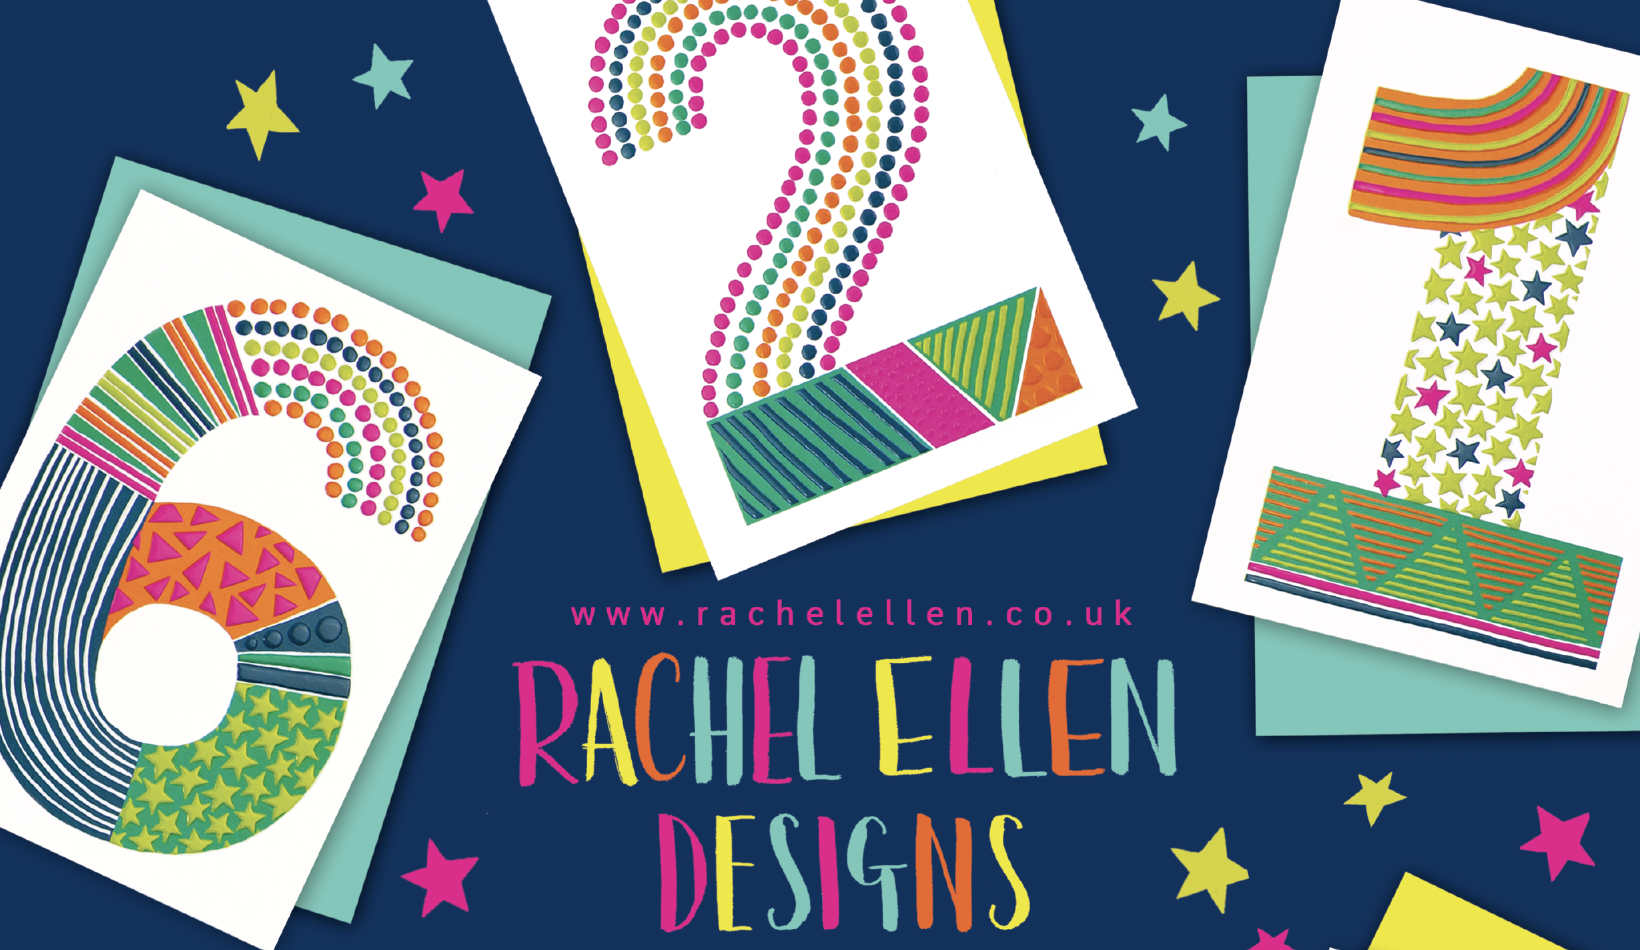 Above: Rachel Ellen Designs will be launching its new POP range at Autumn Fair in Hall 6 Stand D50-E51,